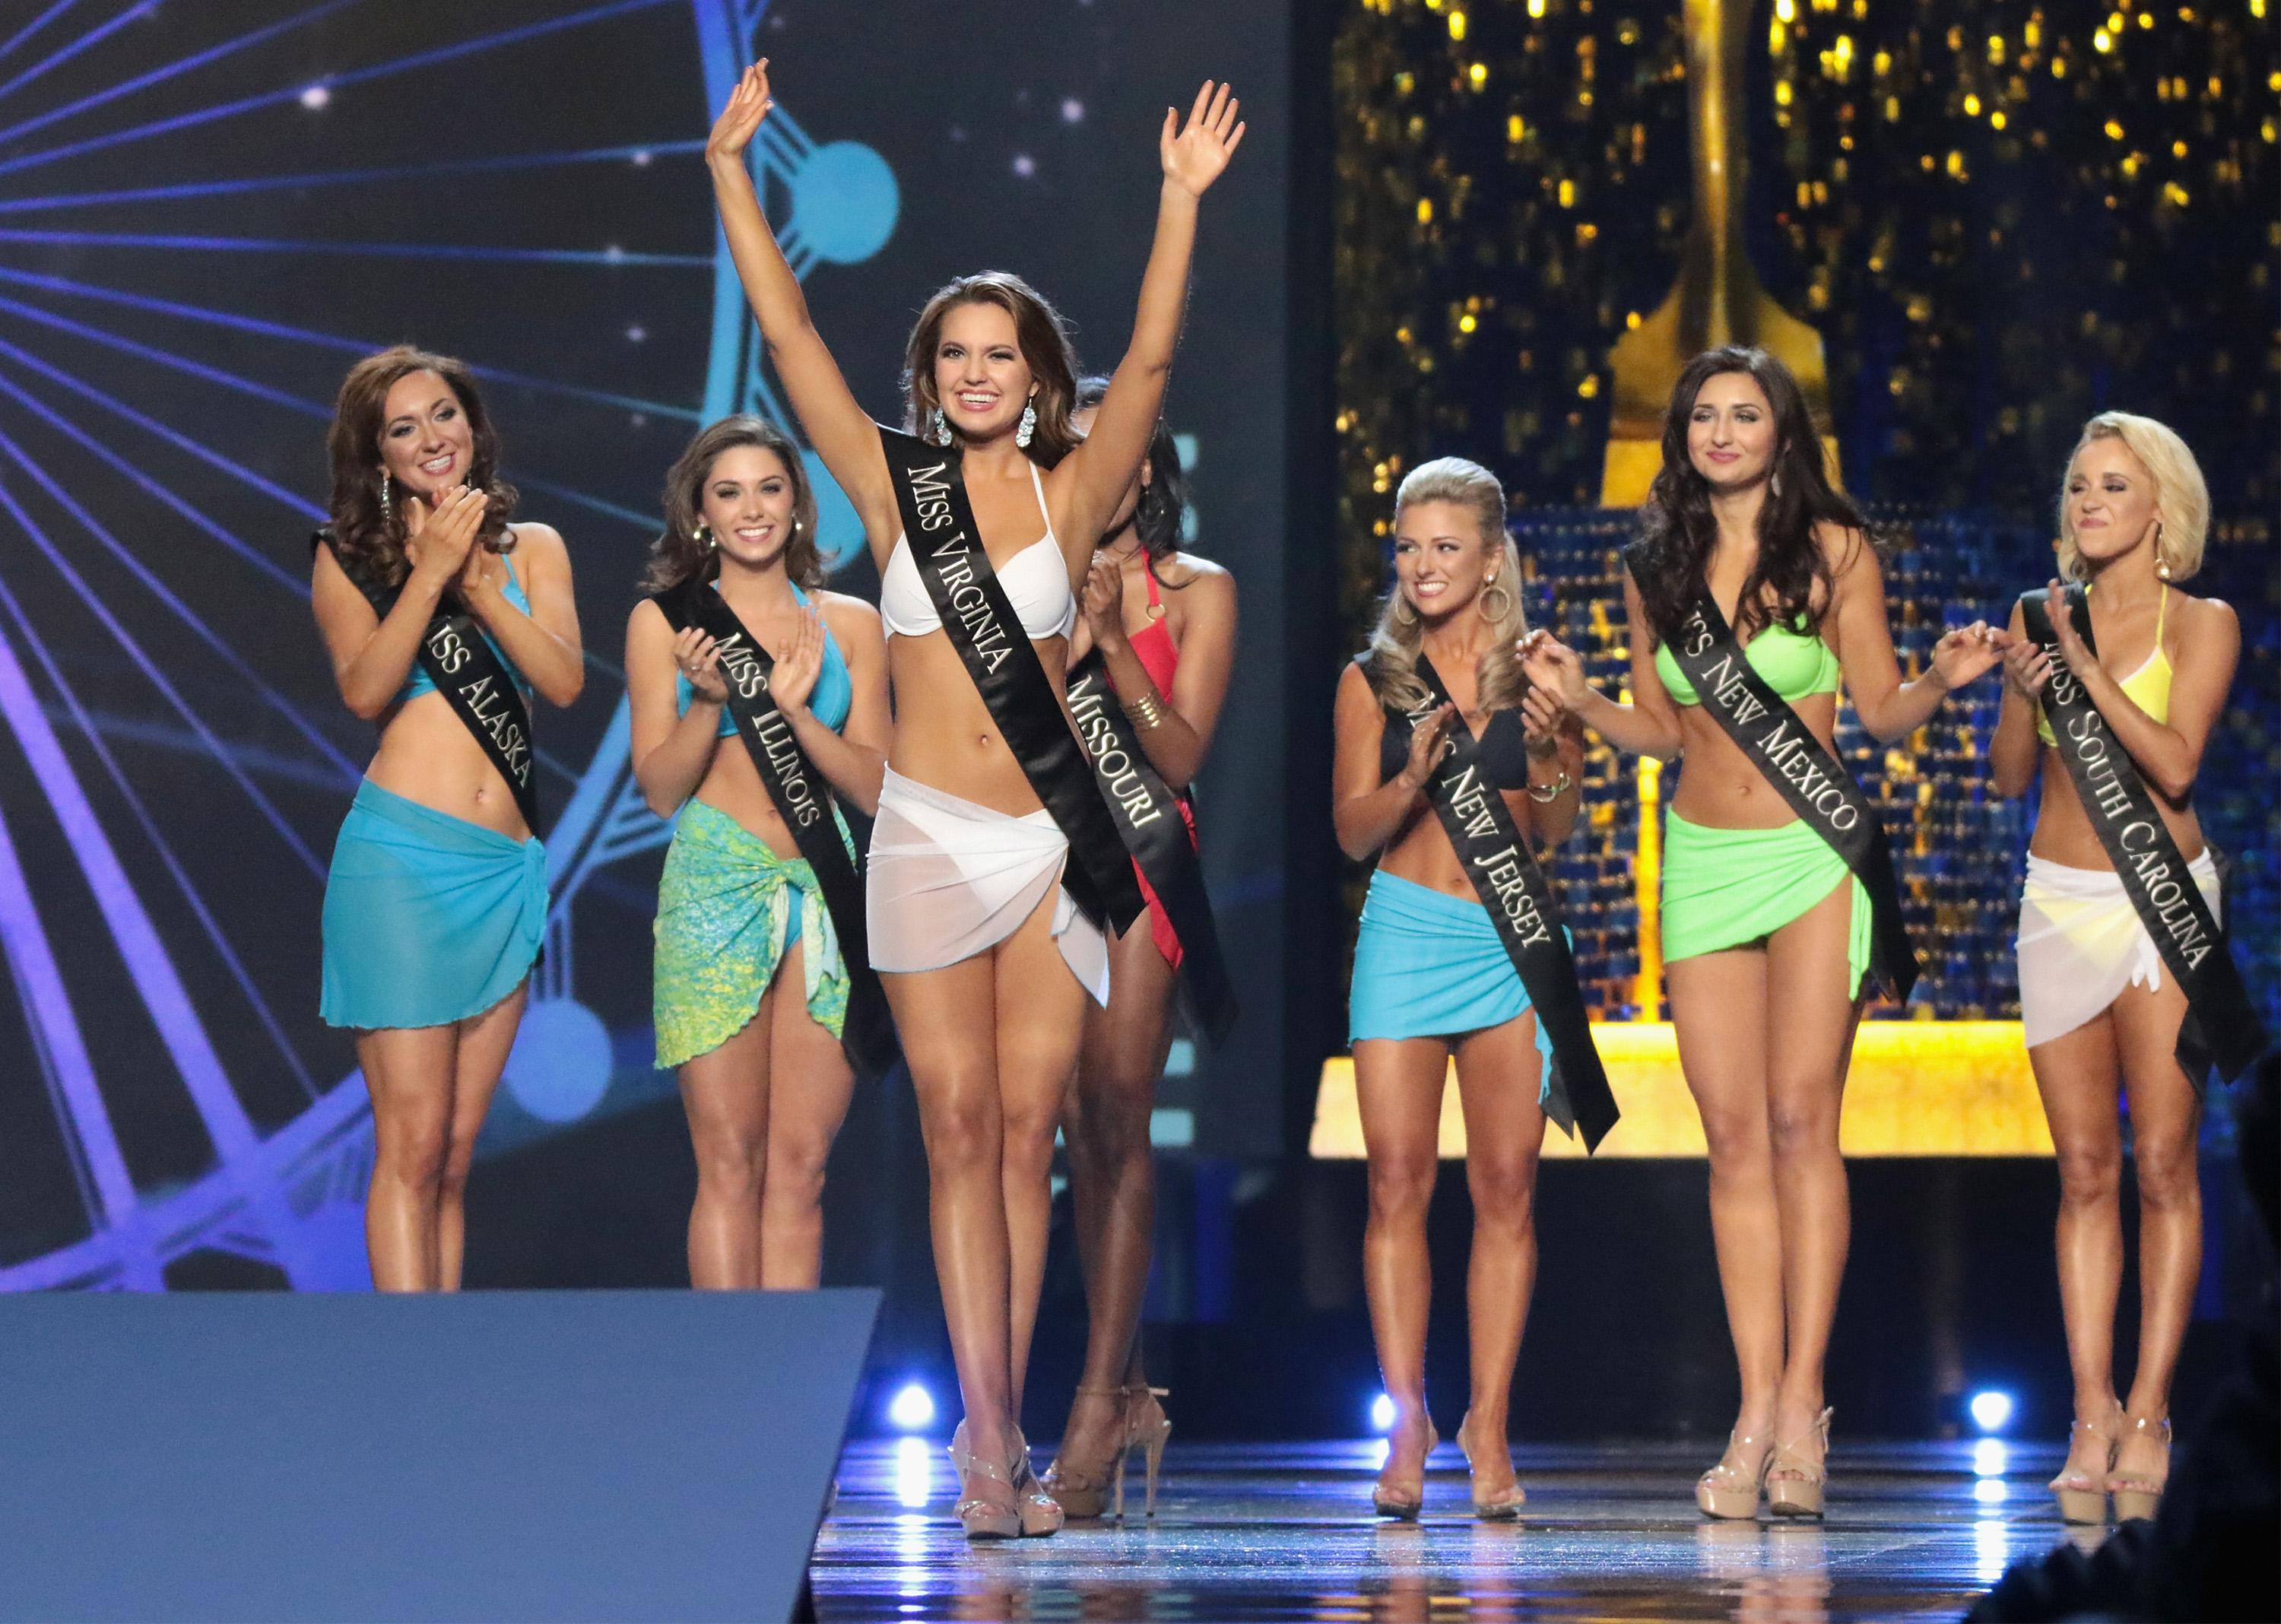 Miss America contestants participate in the 2017 swimsuit competition.